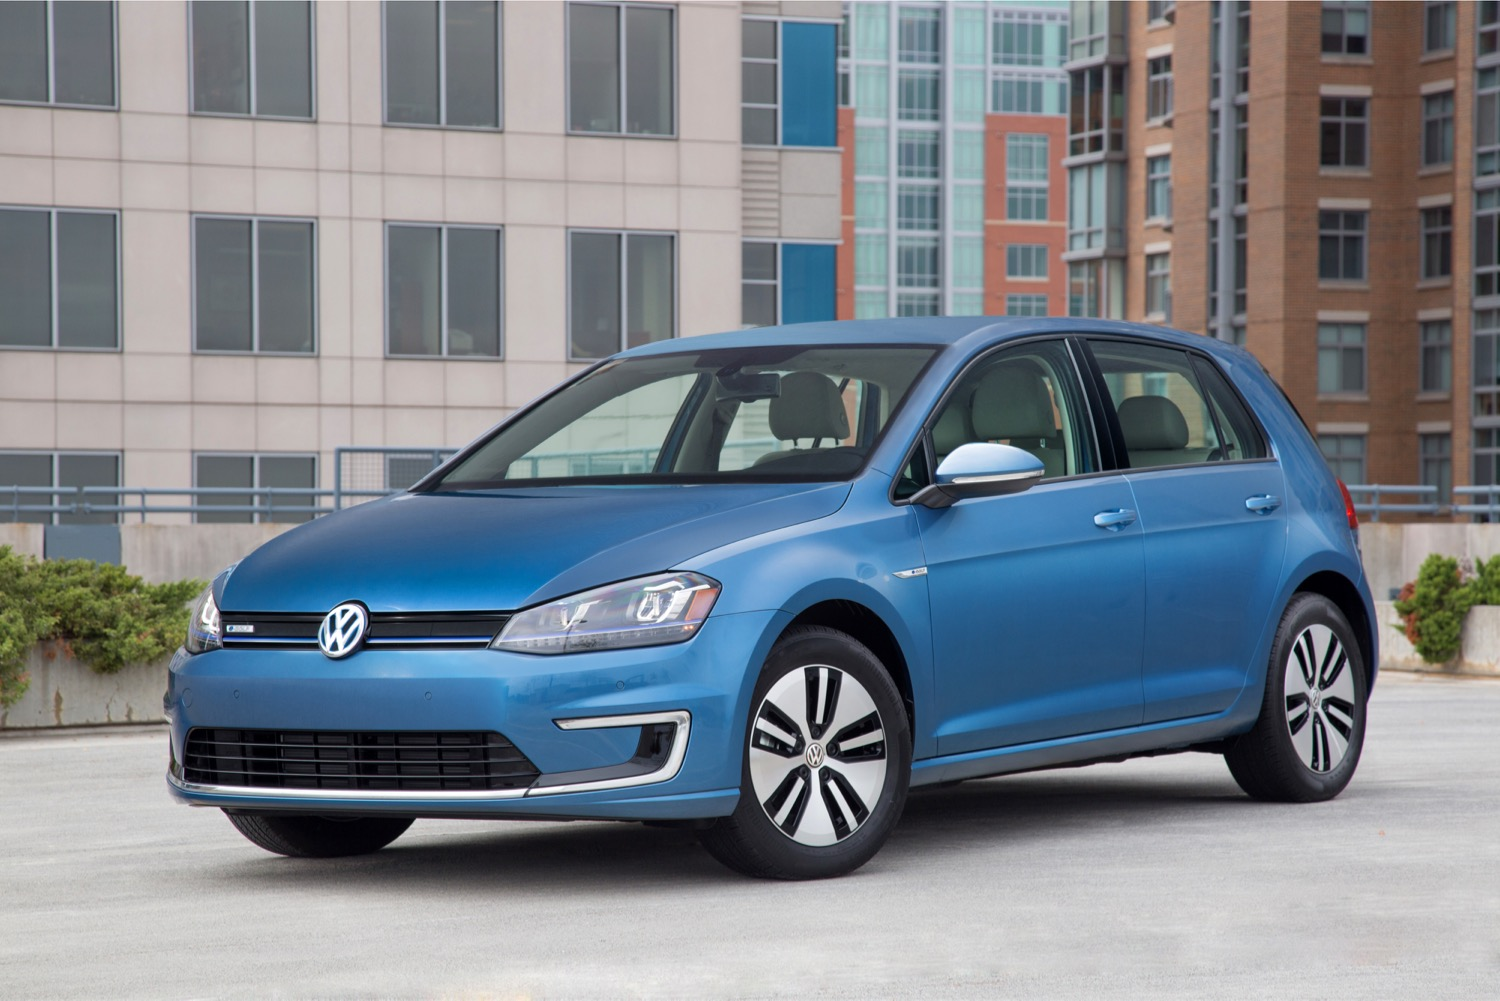 2016 Volkswagen e-Golf SE: $30K Price For New Electric Car ...